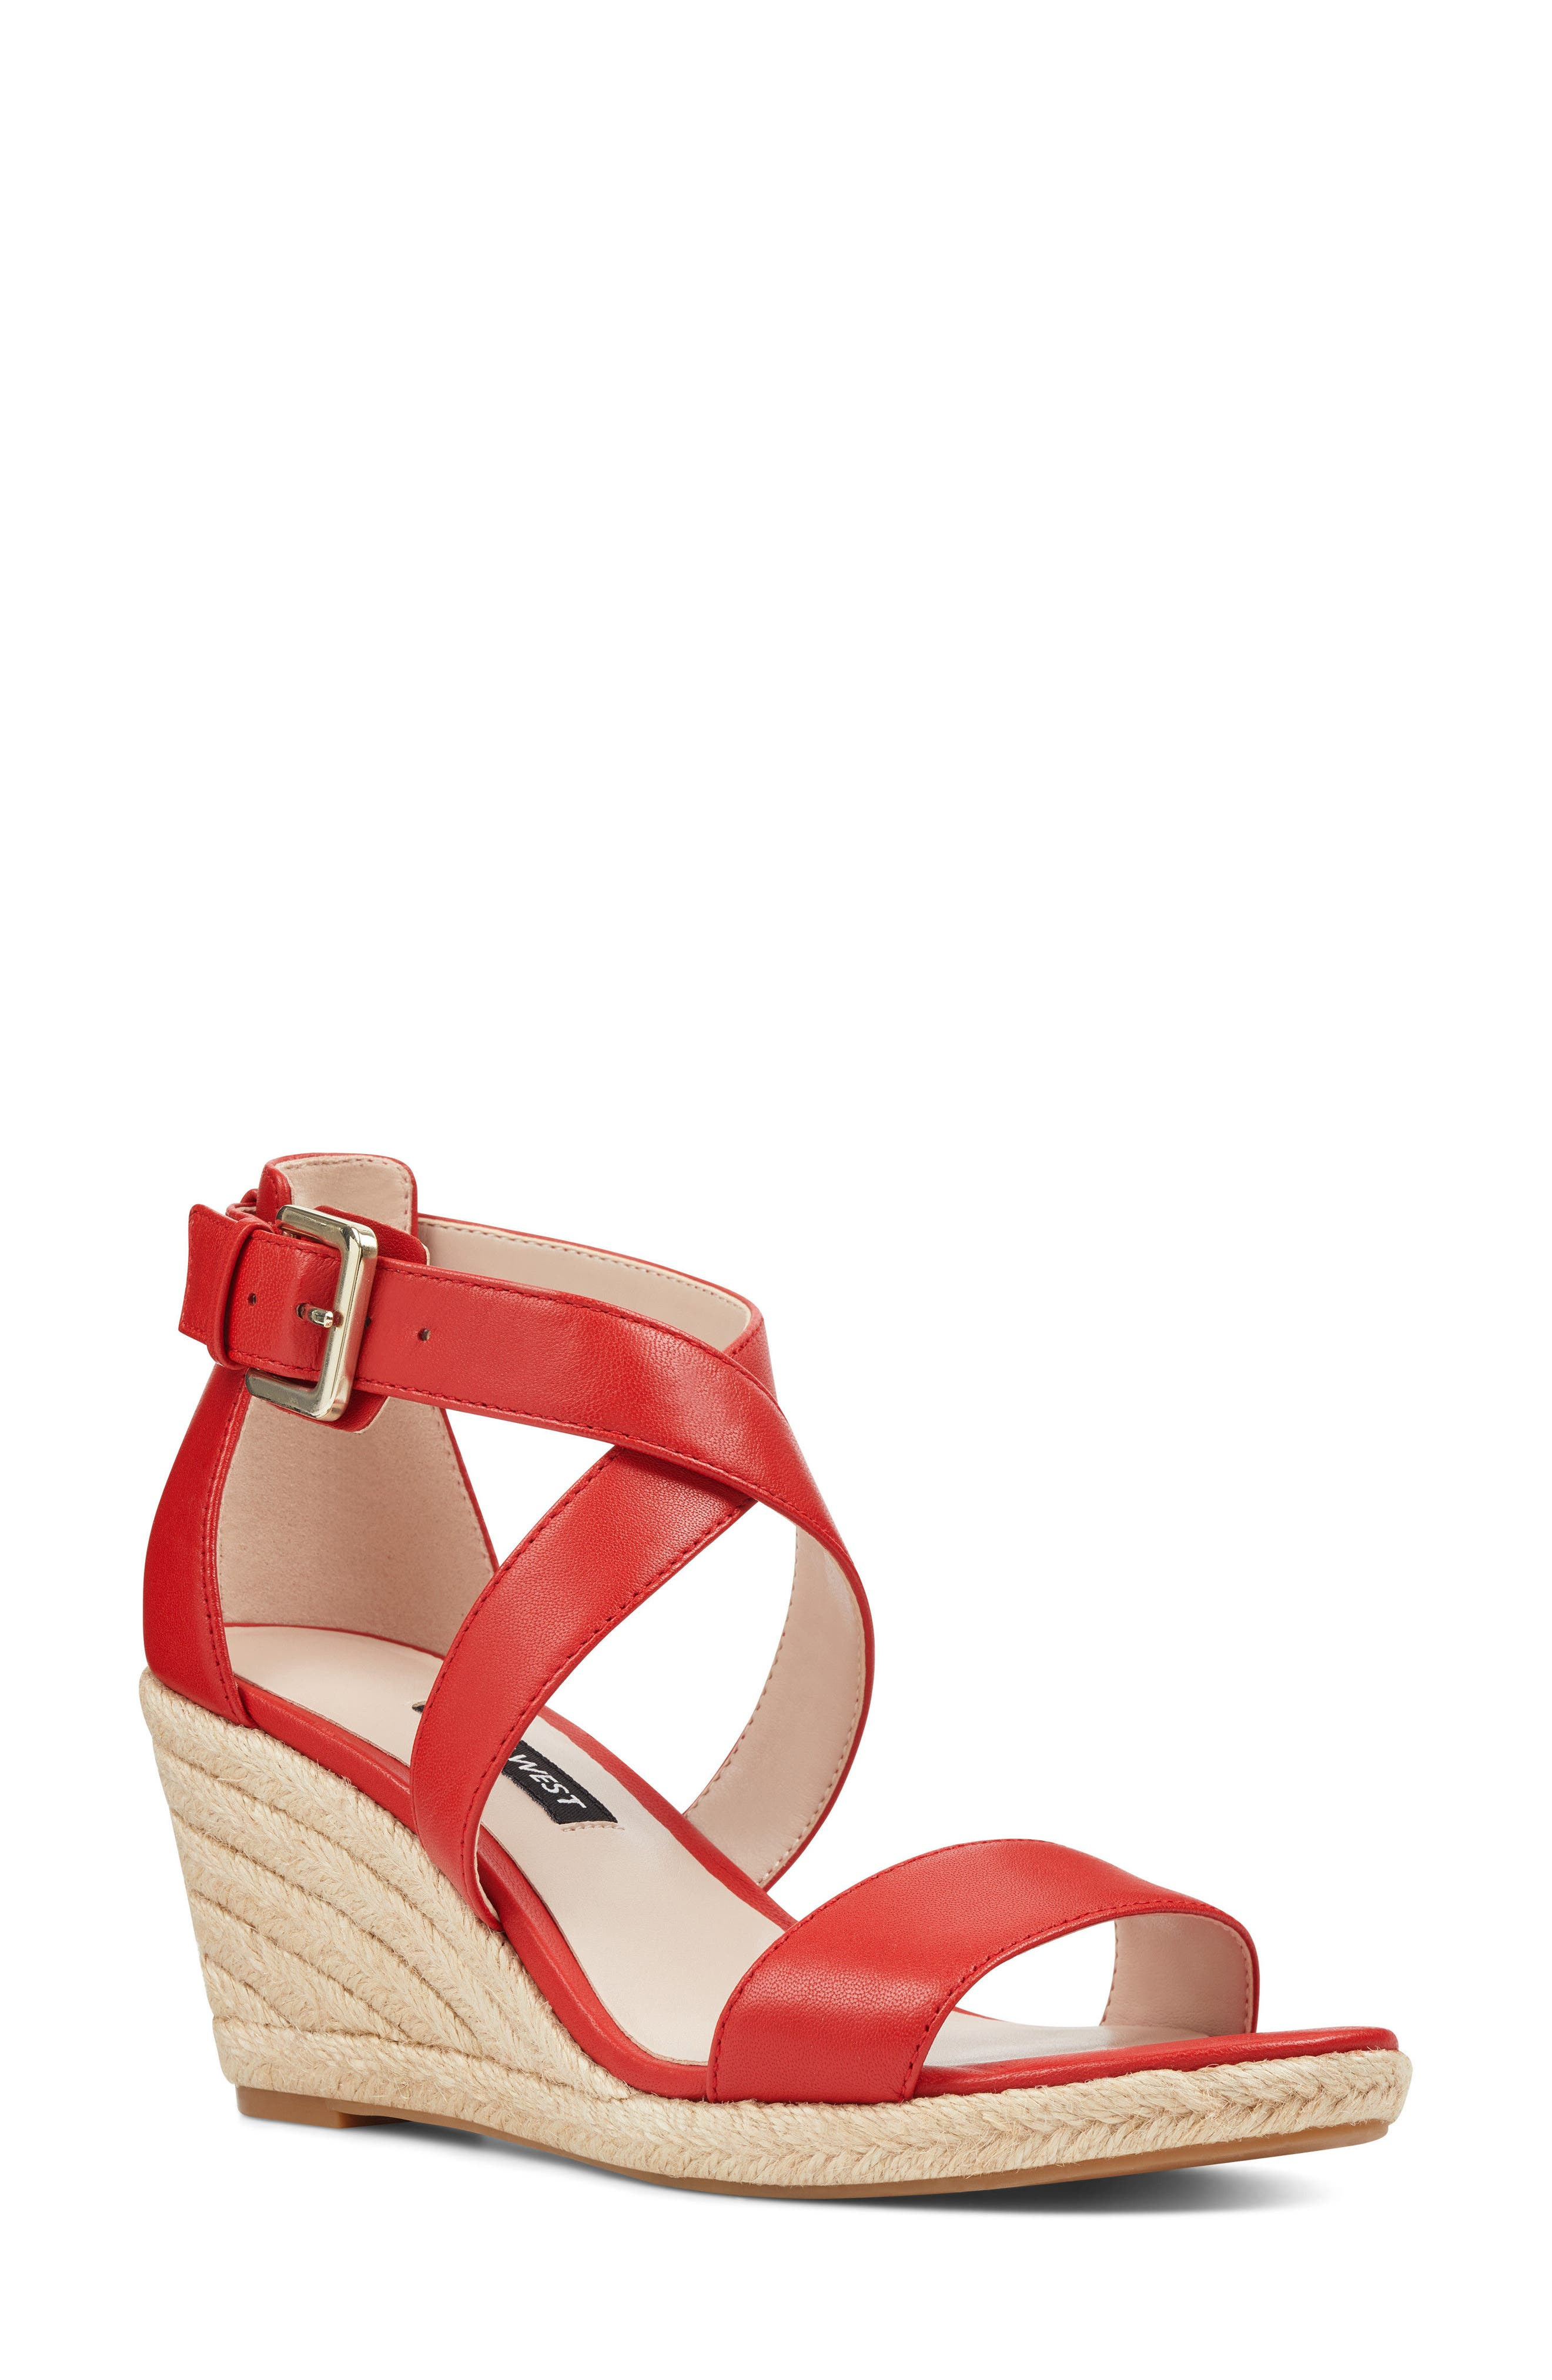 Jorjapeach Espadrille Wedge Sandal,                         Main,                         color, RED LEATHER